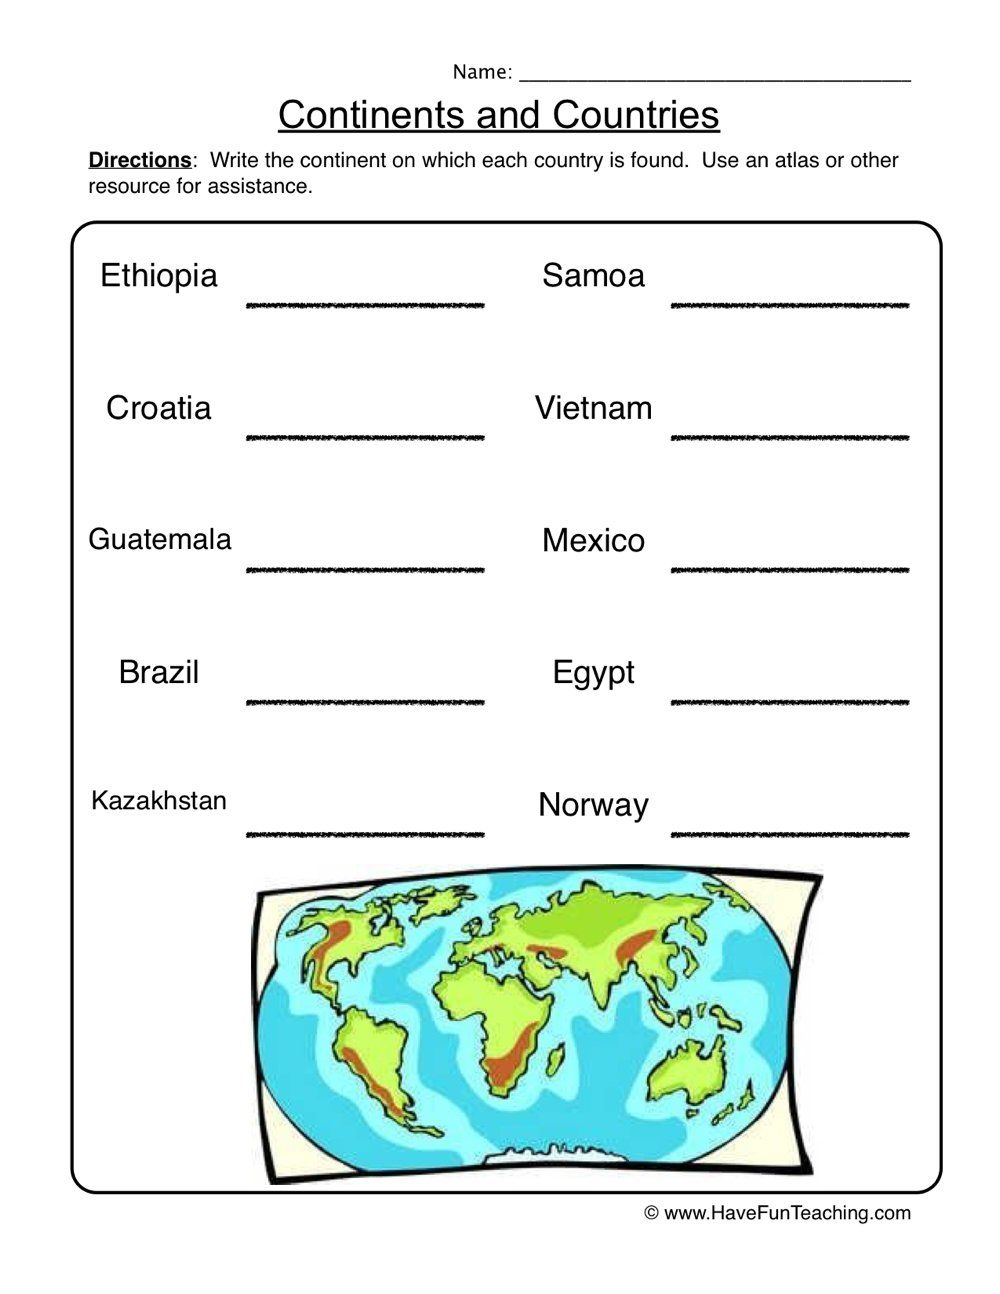 Worksheets Have Fun Teaching Geography Worksheets Social Studies Worksheets Have Fun Teaching